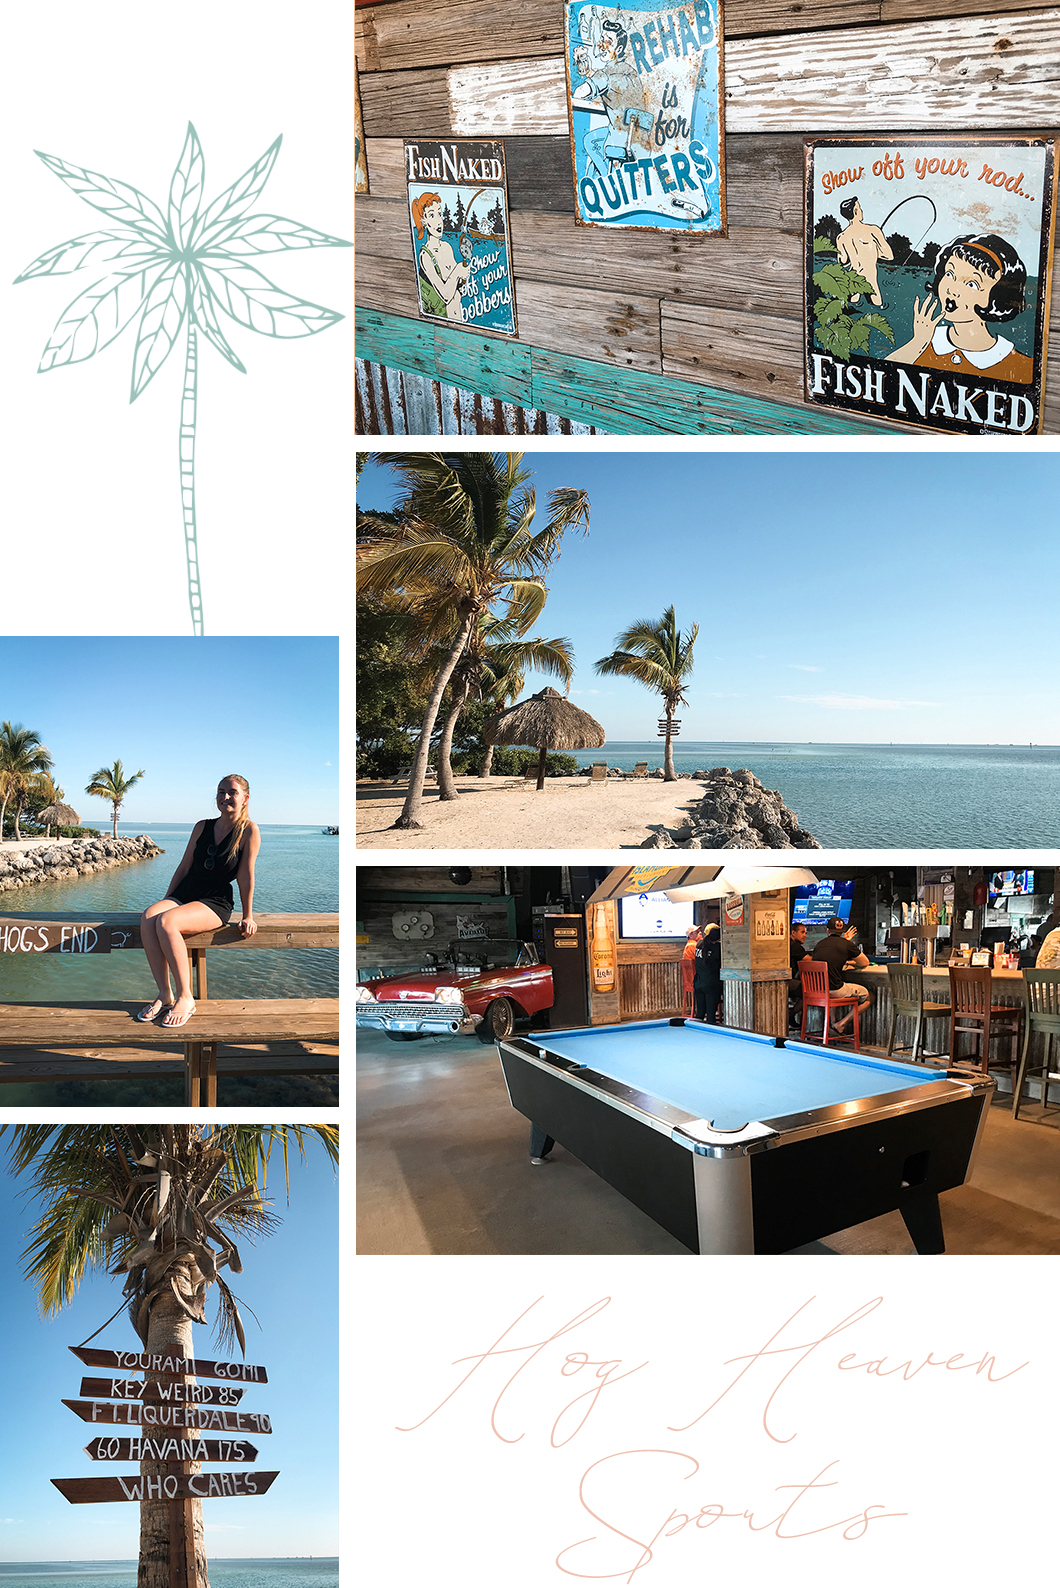 Hog Heaven Sports Bar and Grill, bonne adresse à Islamorada